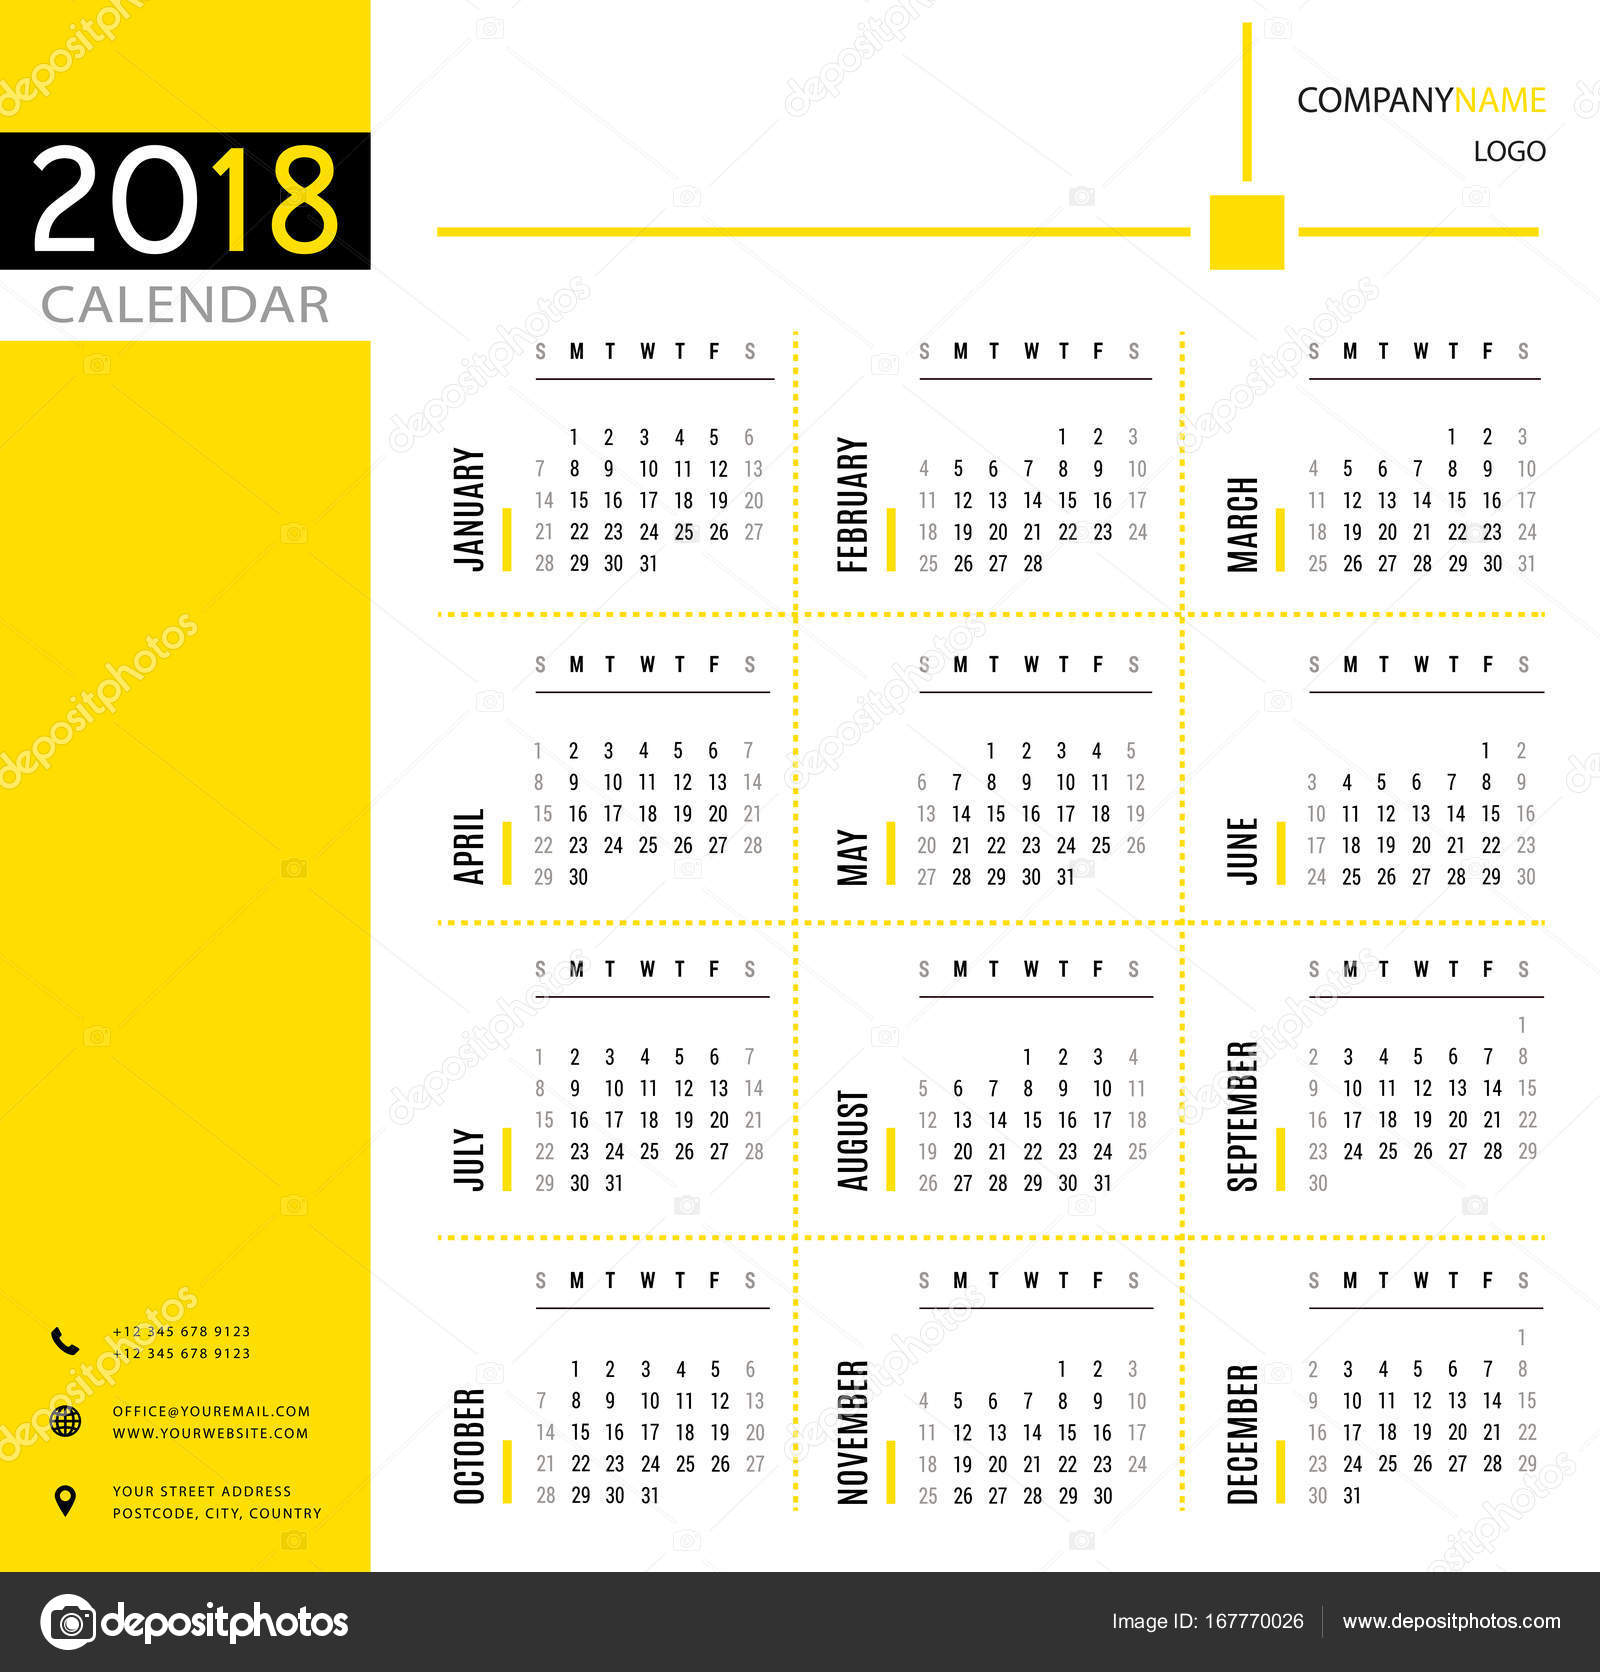 2018 calendar planner organizer and schedule template for companies and private use stock